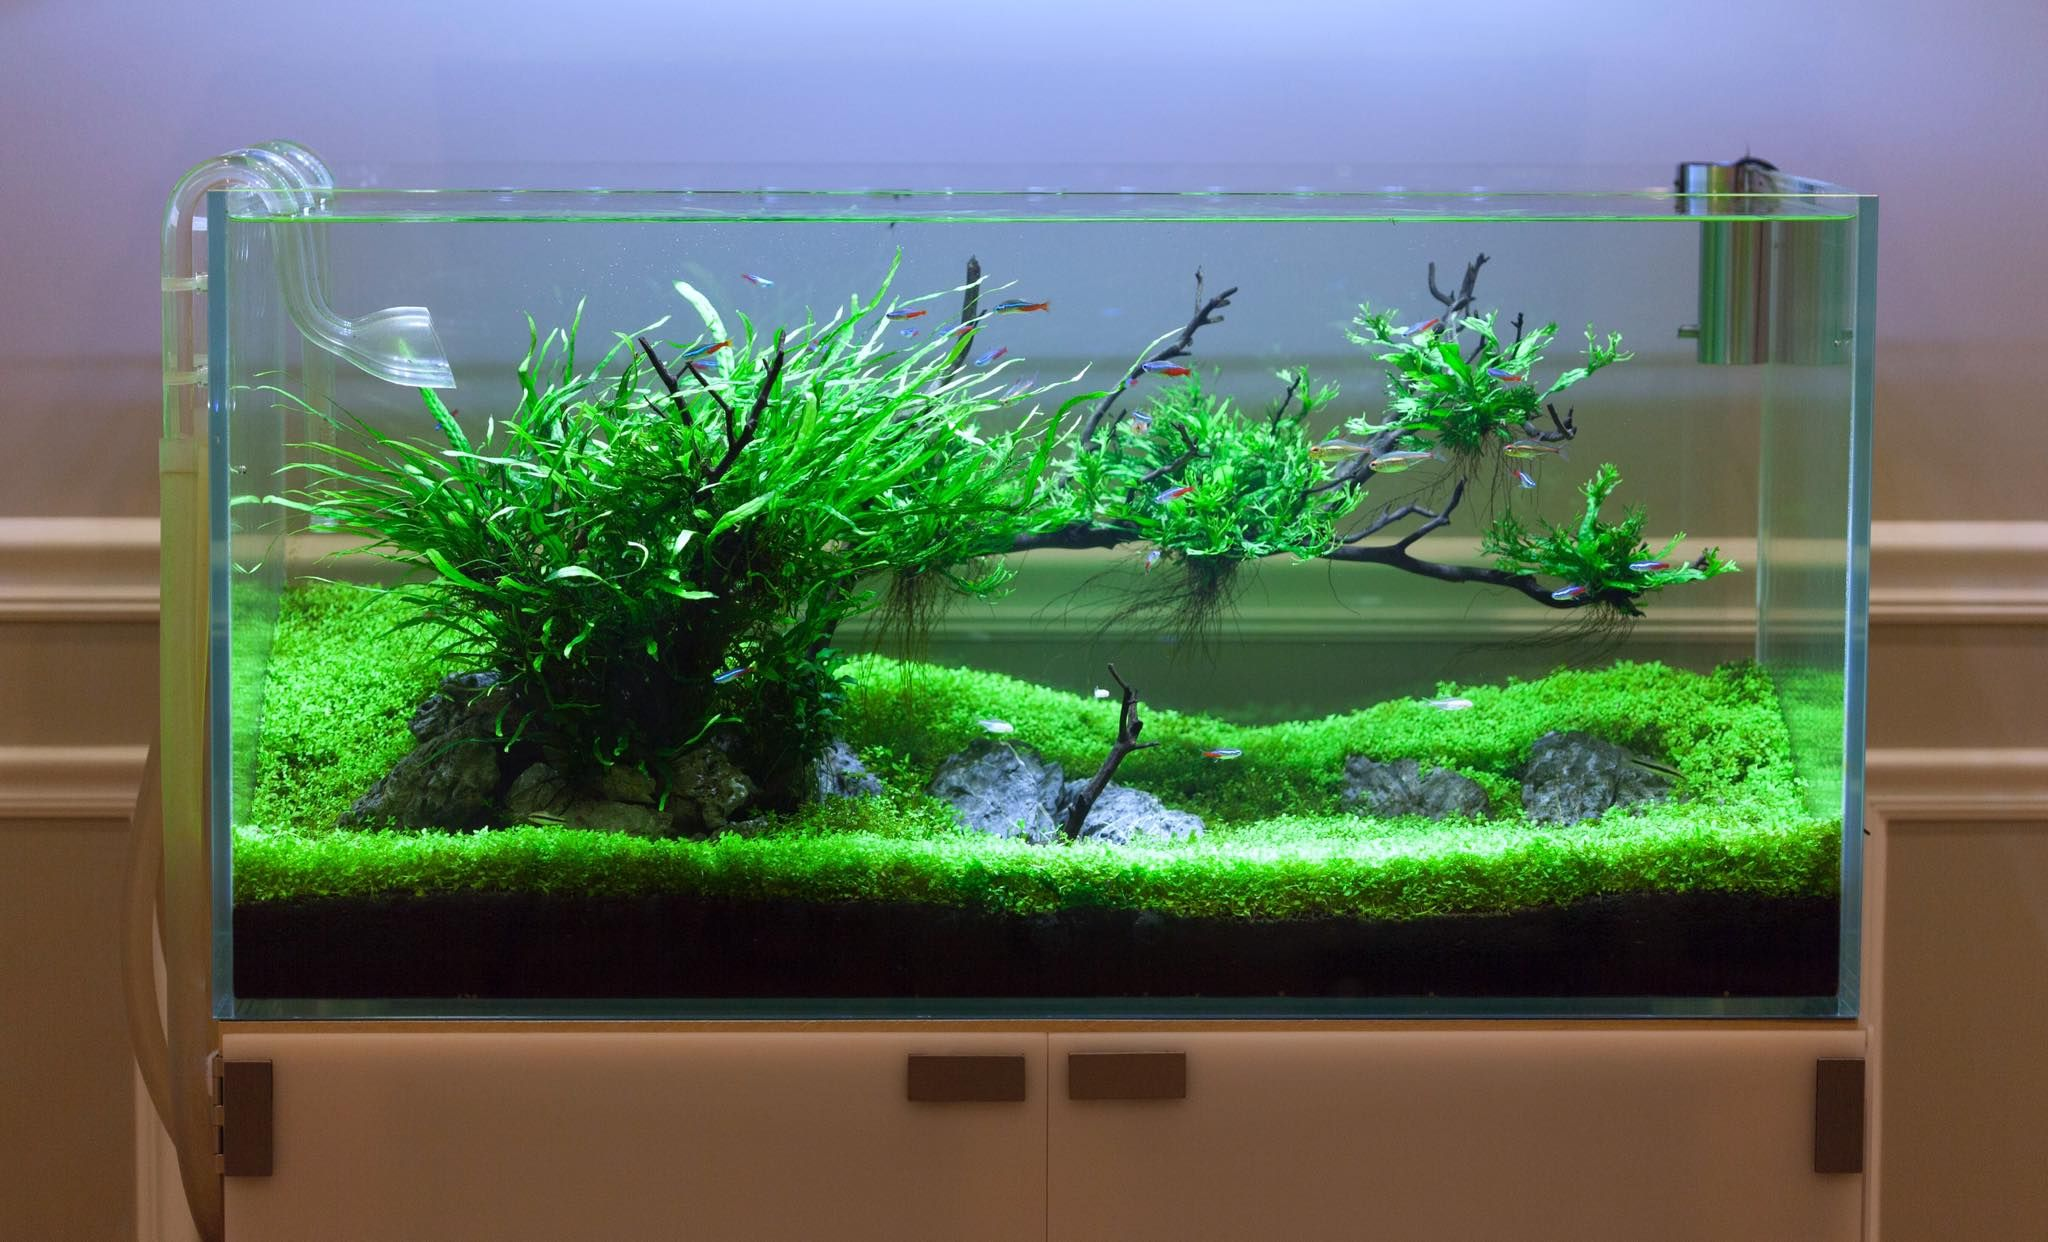 Pin by Daniel Proctor on Aquascaped Tanks Pinterest